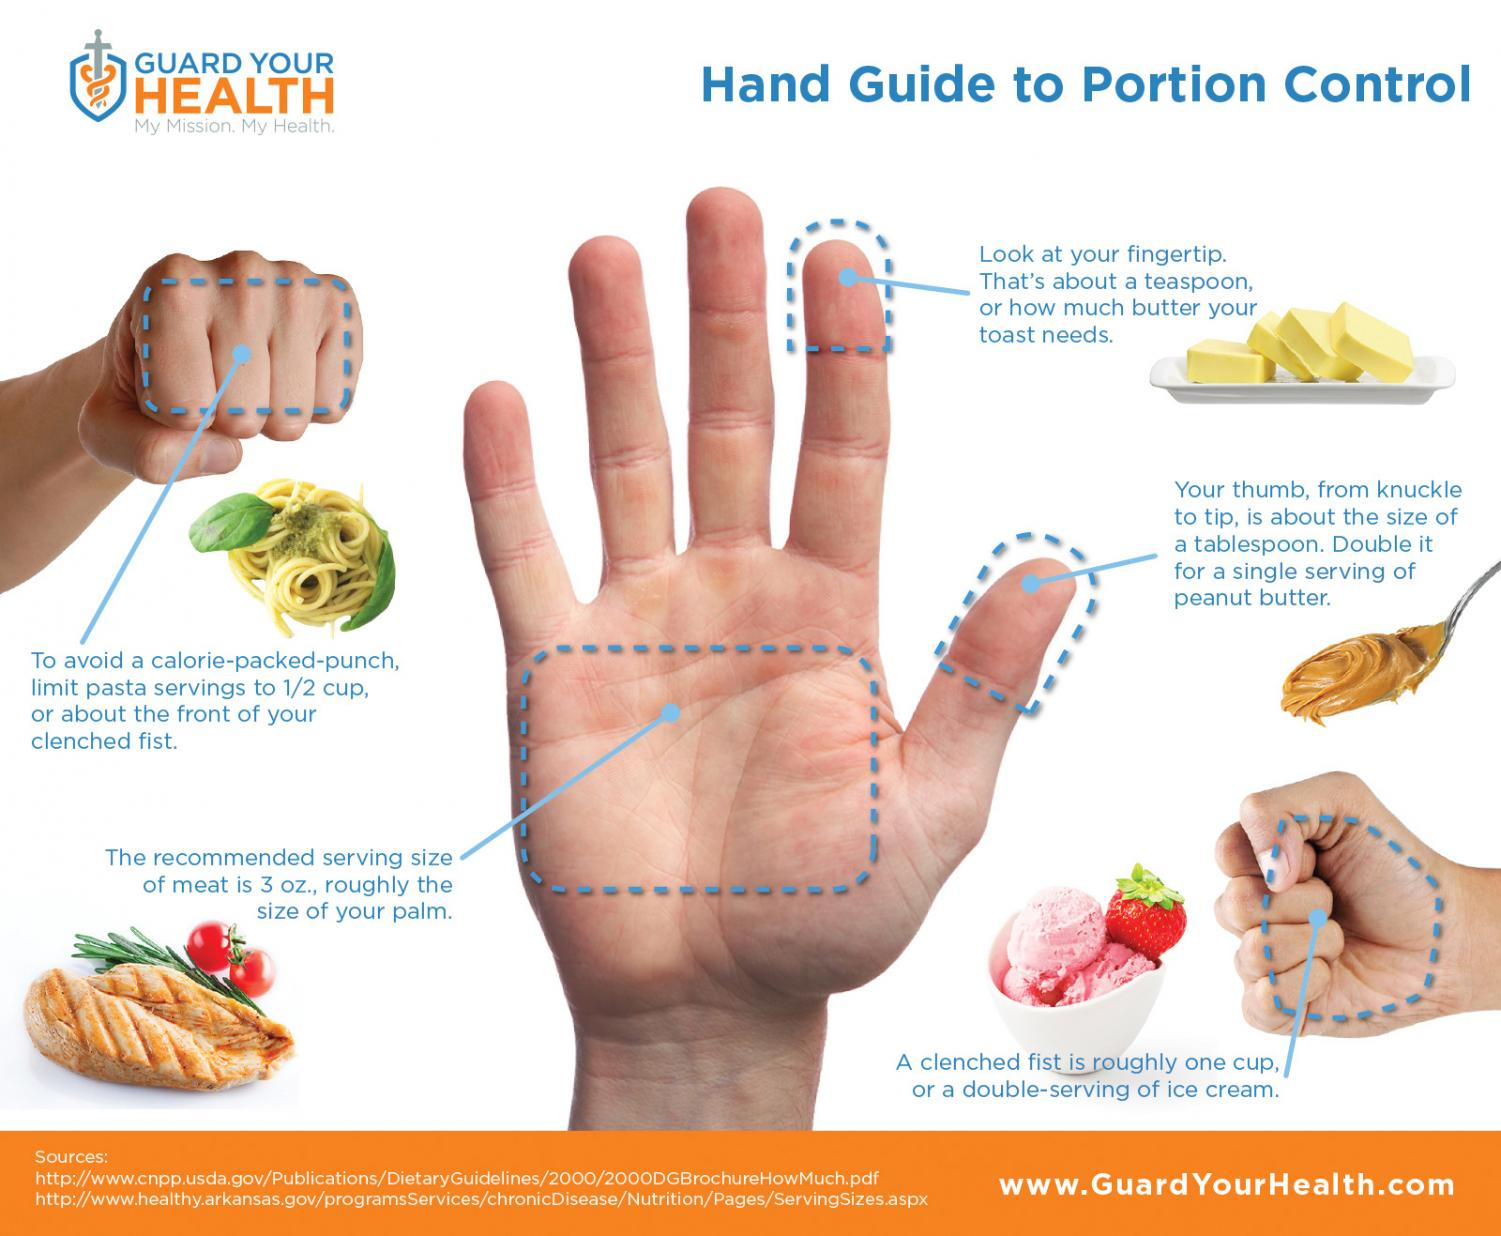 This is a picture to help understand what portion sizes should look like.